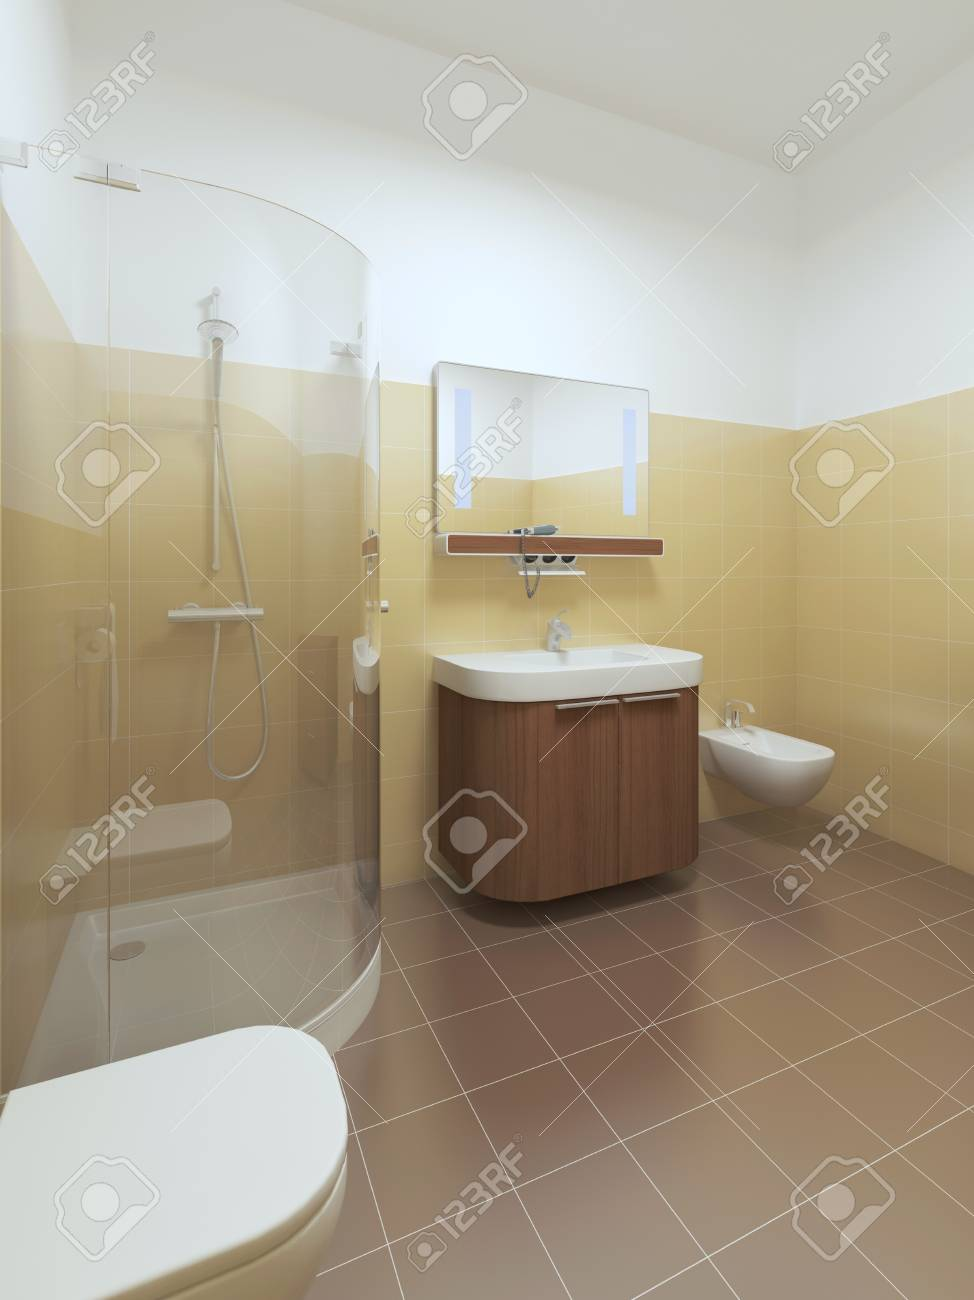 Badezimmer Mit Gelb Stock Photo